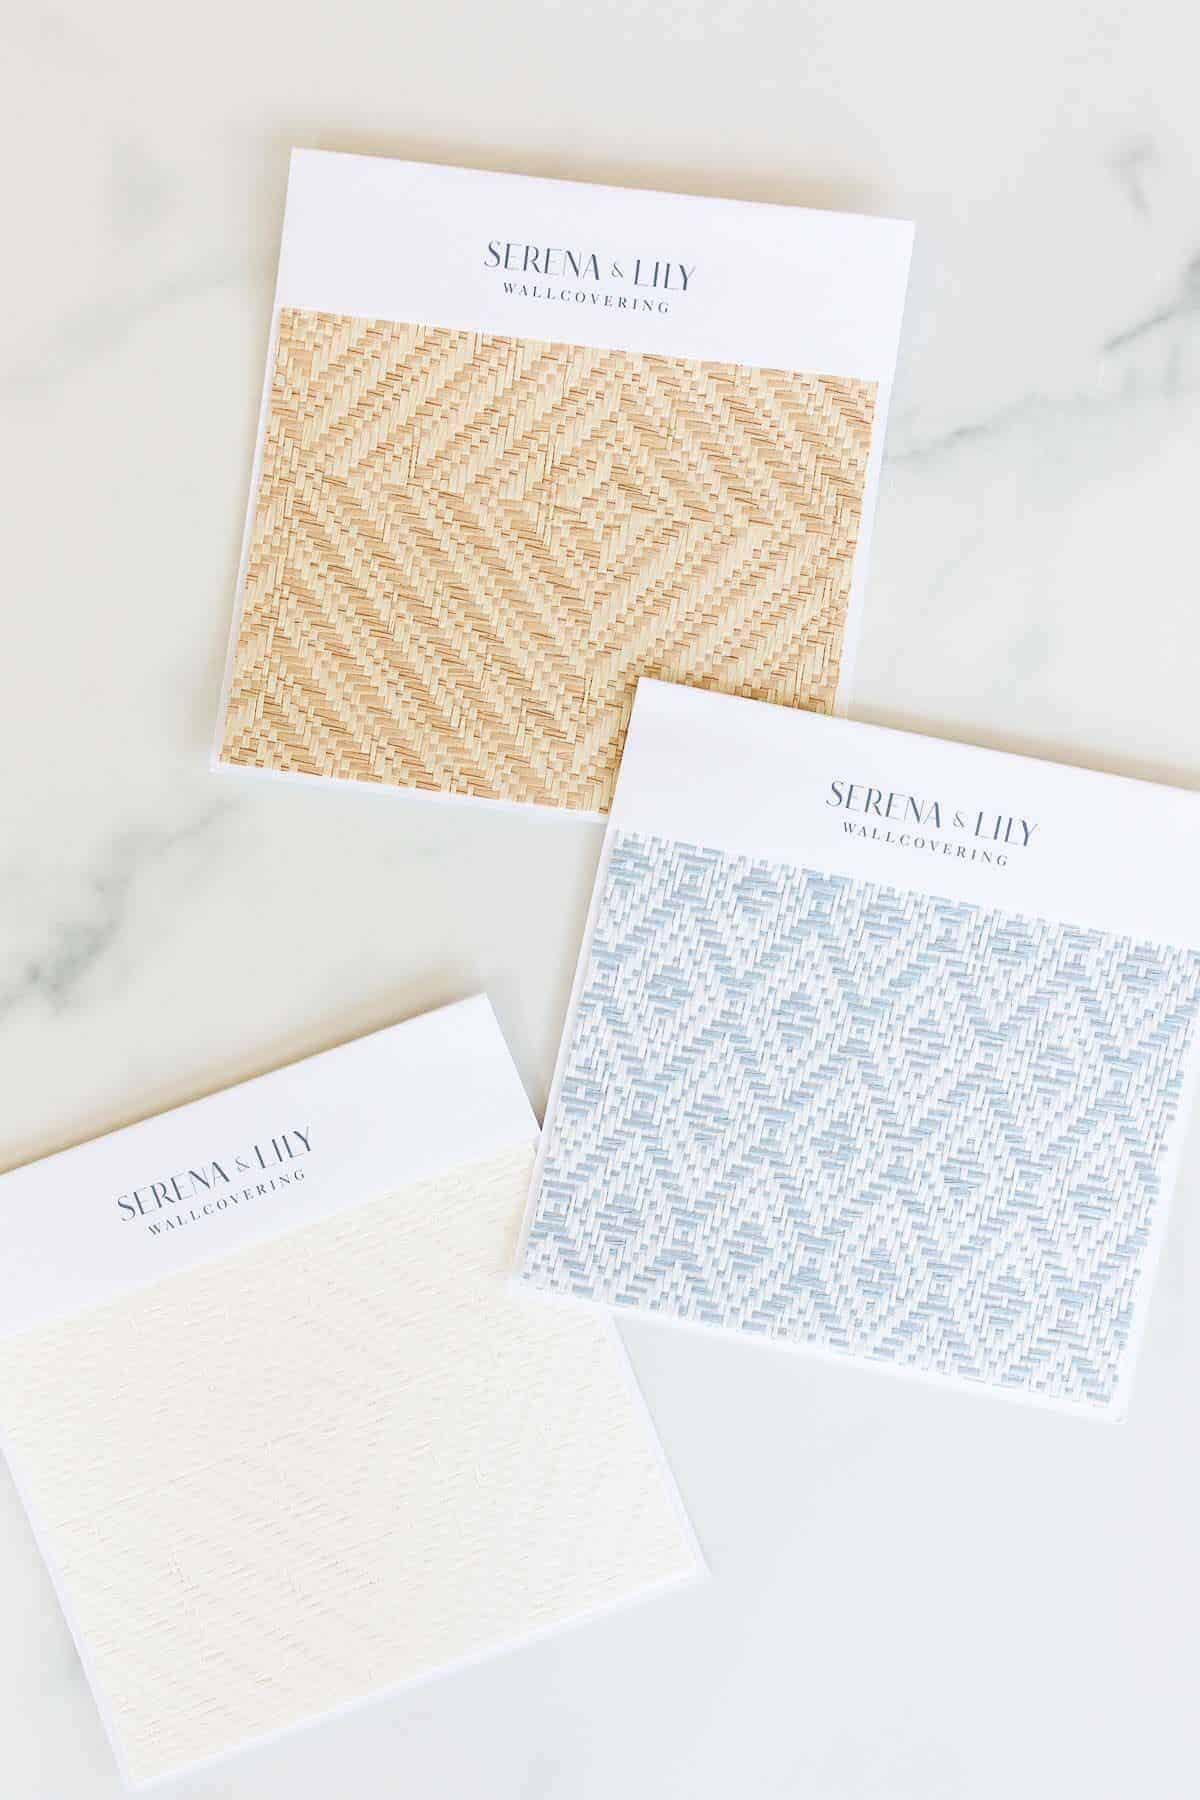 Wallpaper samples from Serena and Lily laid out on a marble surface.